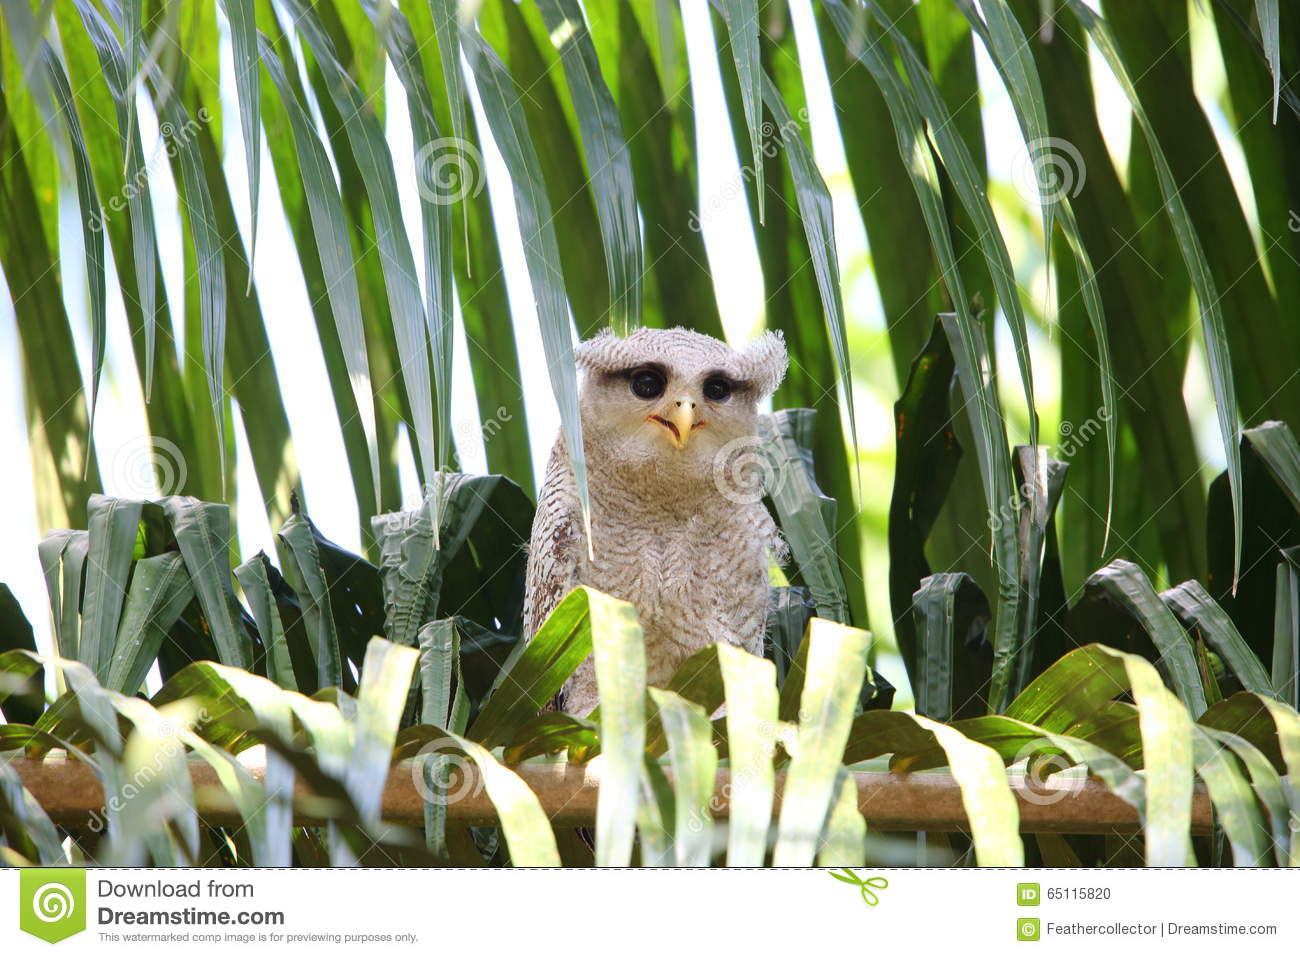 Malay Eagle Owl clipart #16, Download drawings